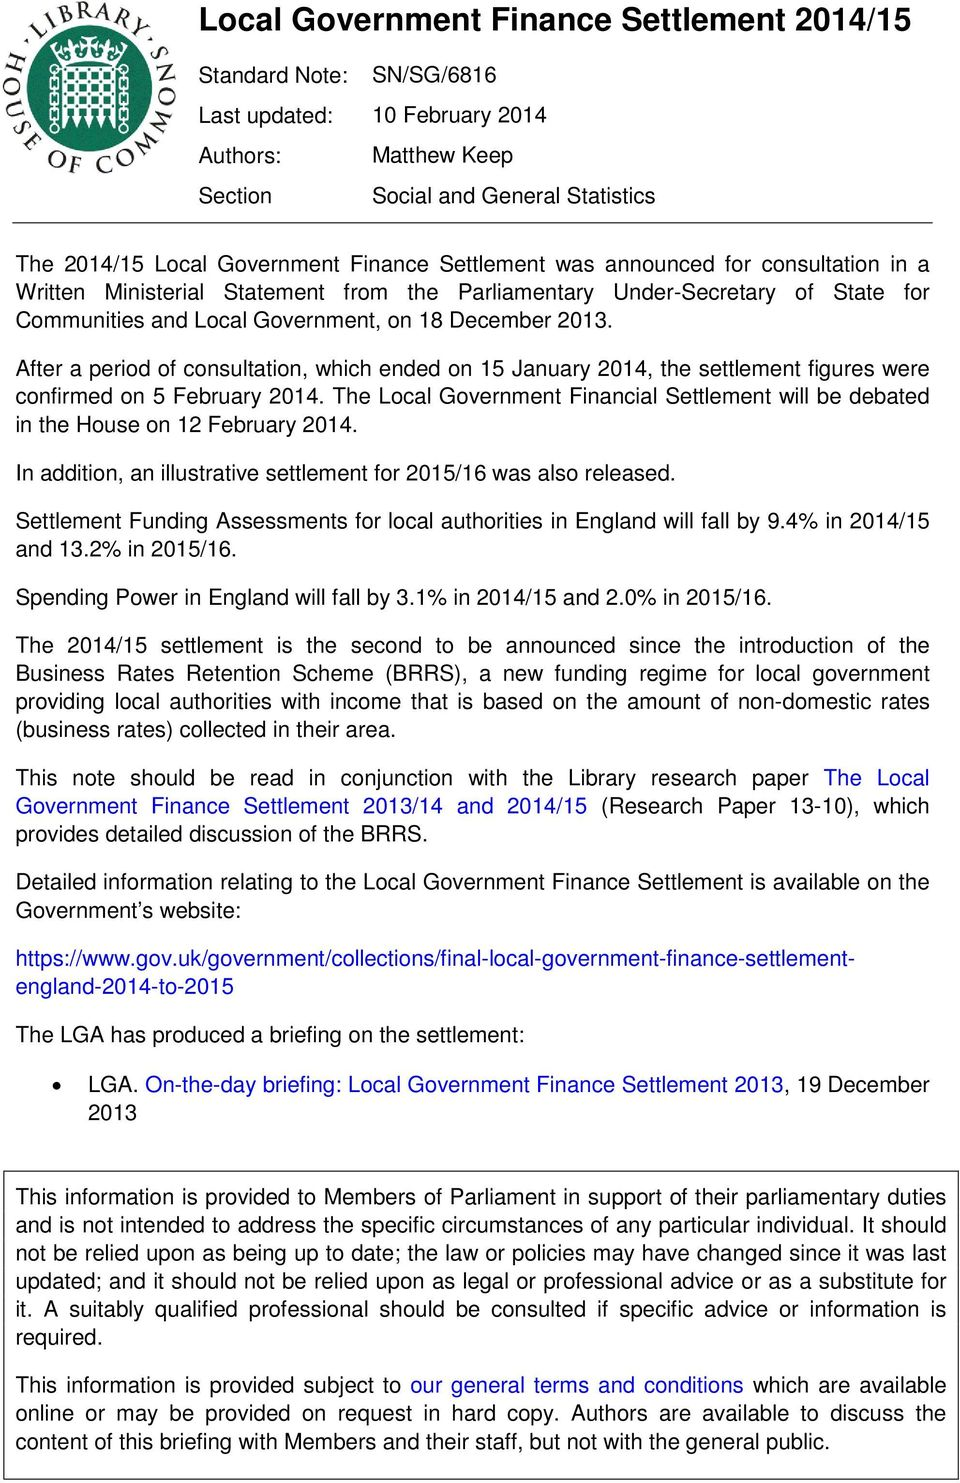 After a period of consultation, which ended on 15 January 2014, the settlement figures were confirmed on 5 February 2014.